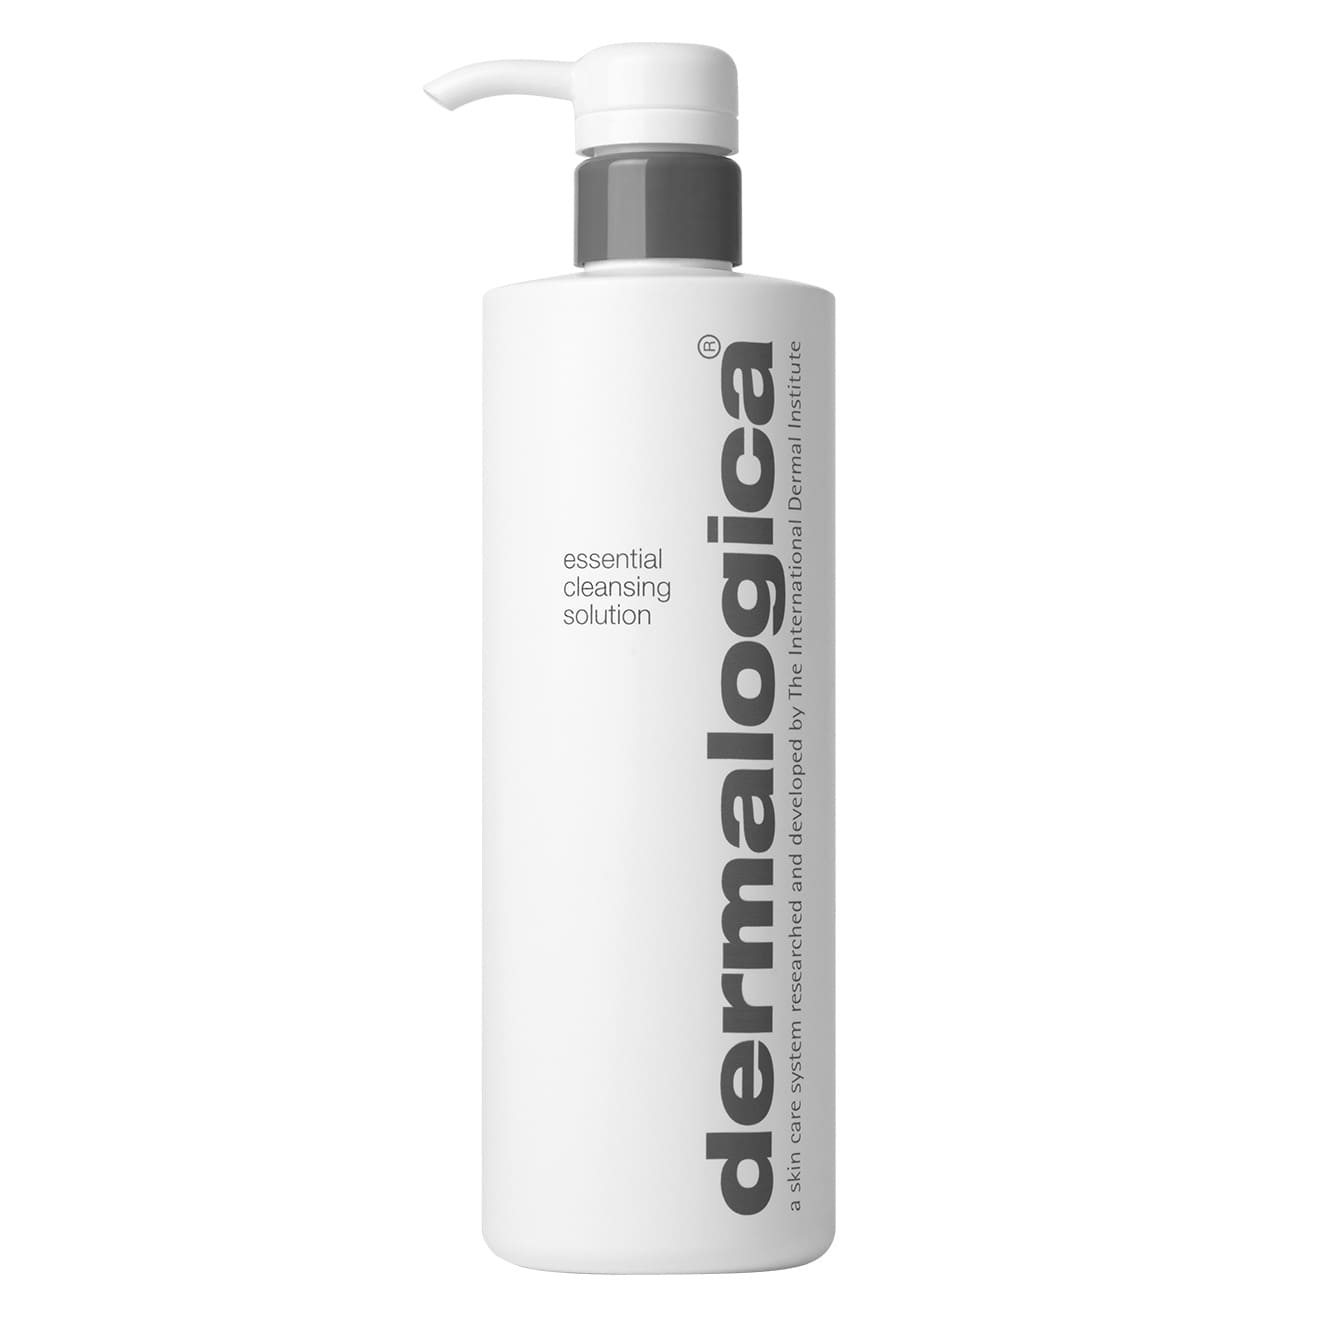 Crème Nettoyante Onctueuse - Essential Cleansing Solution 500ml Dermalogica